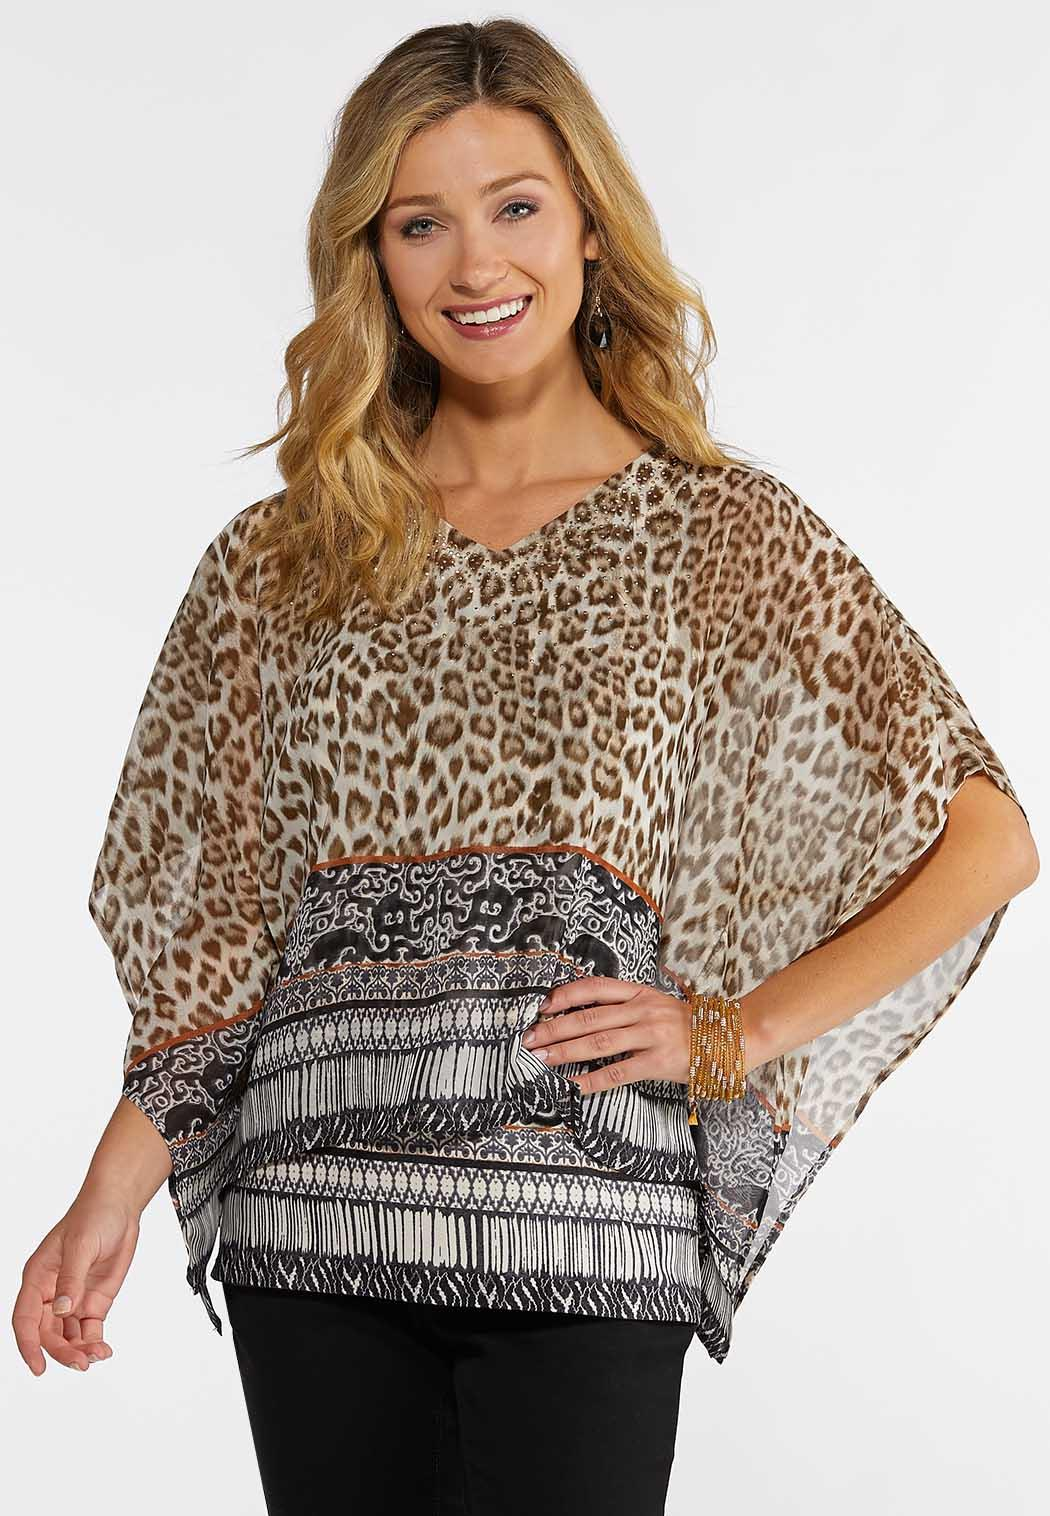 264a91787445 Animal Print Capelet alternate view Animal Print Capelet